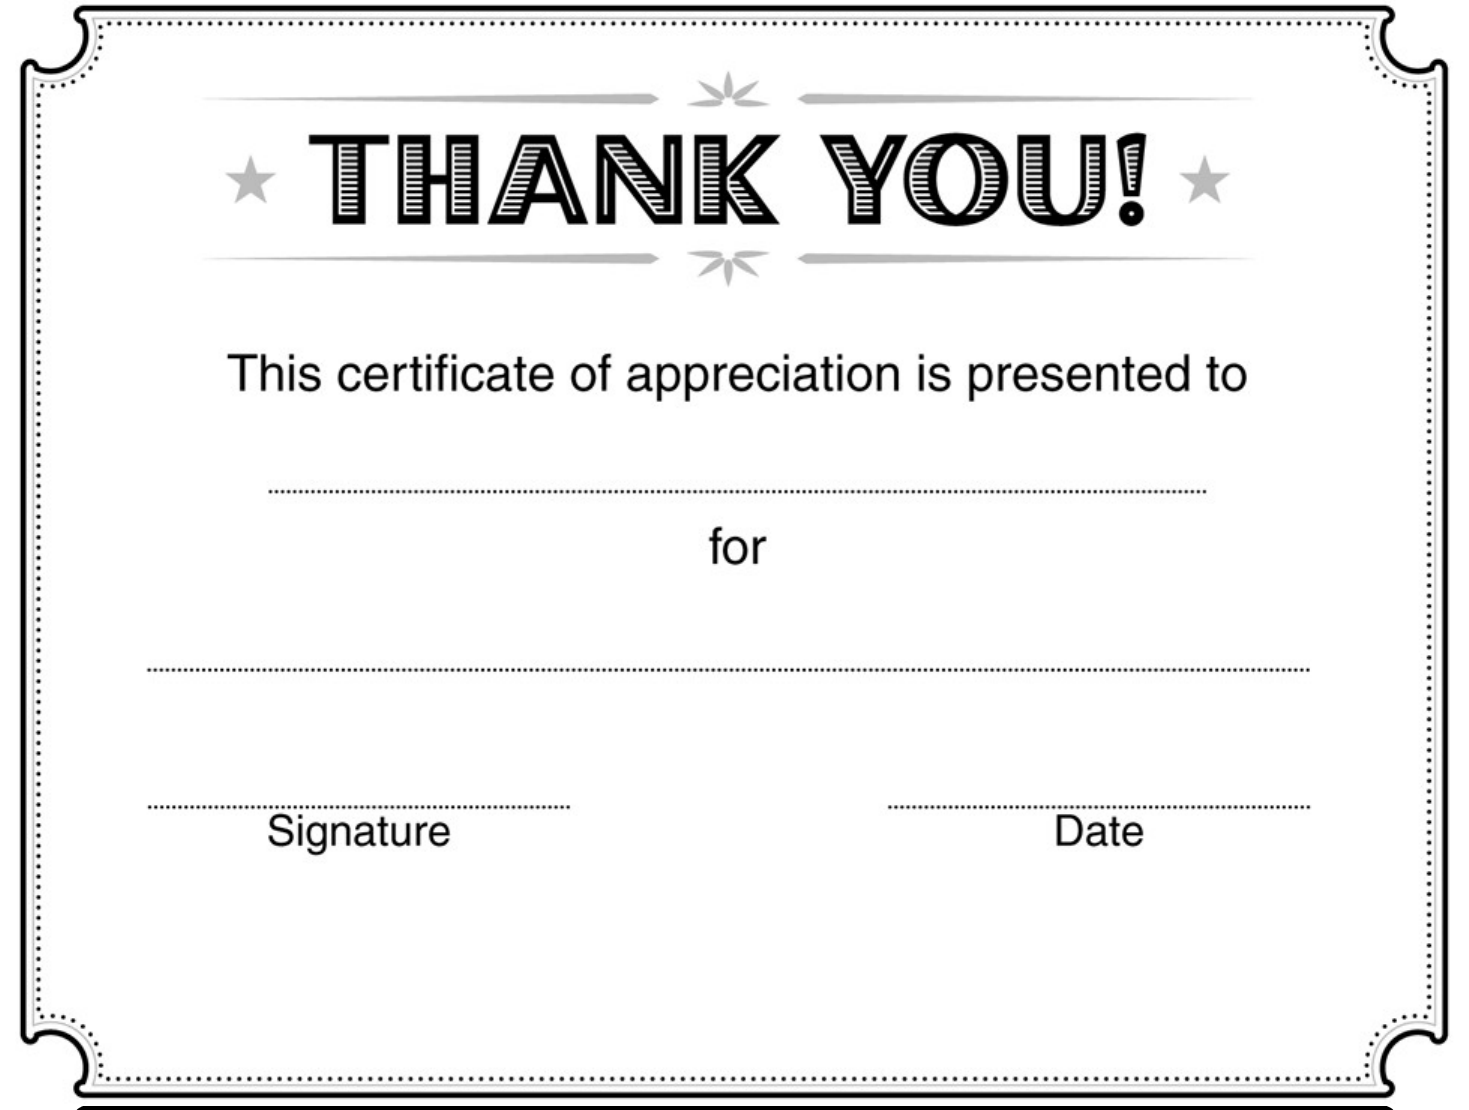 Thank you certificate templates insrenterprises thank you certificate templates yadclub Images